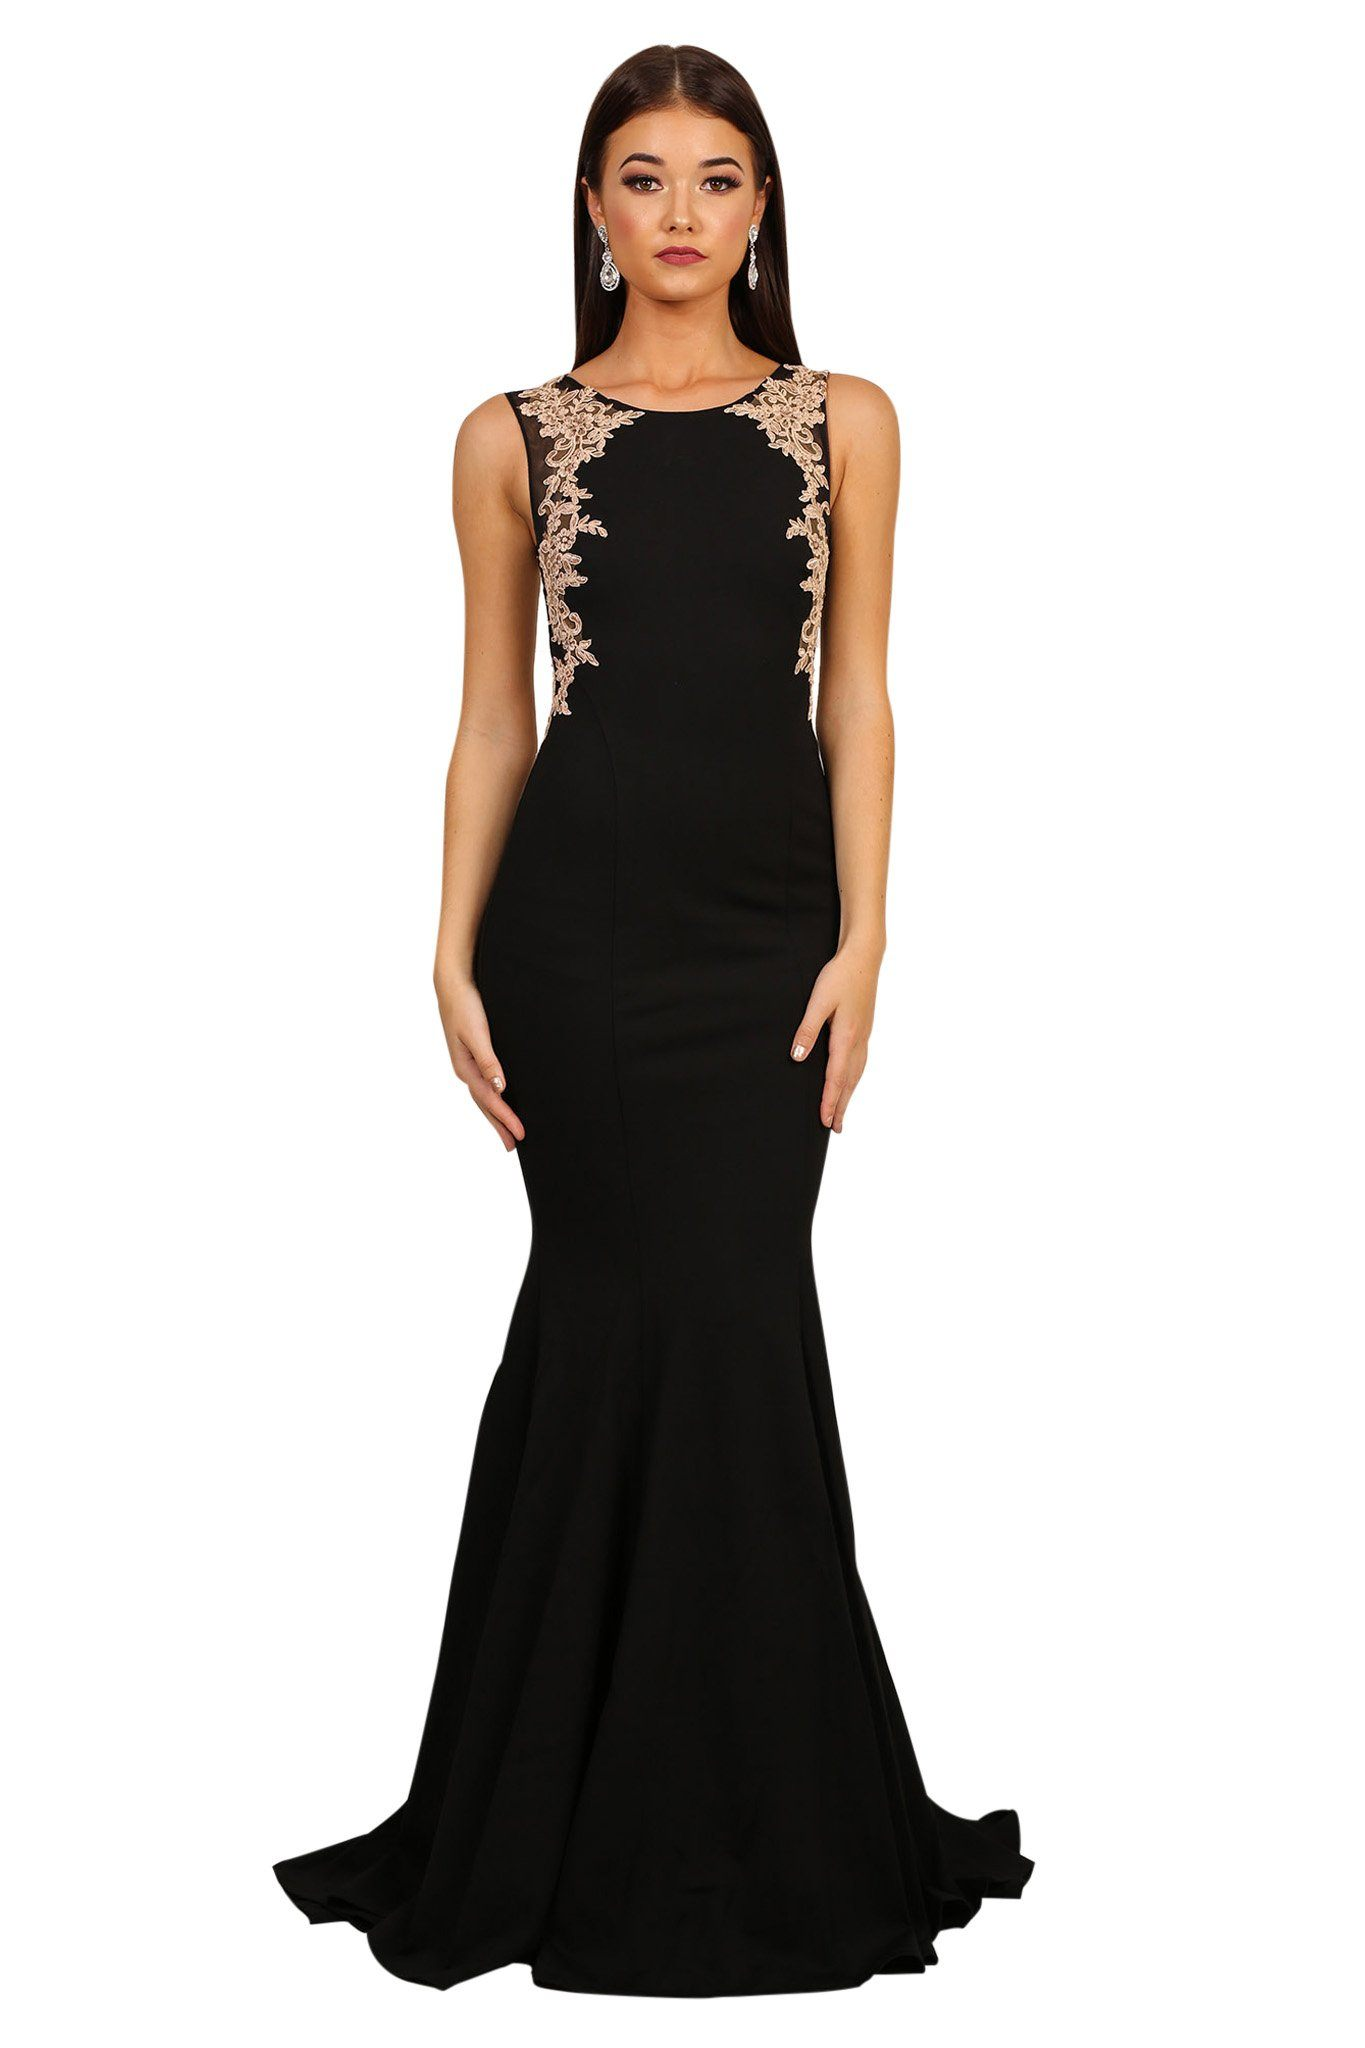 Front of black sleeveless floor-length evening dress with beige lace detailing, flared mermaid skirt and sweep train